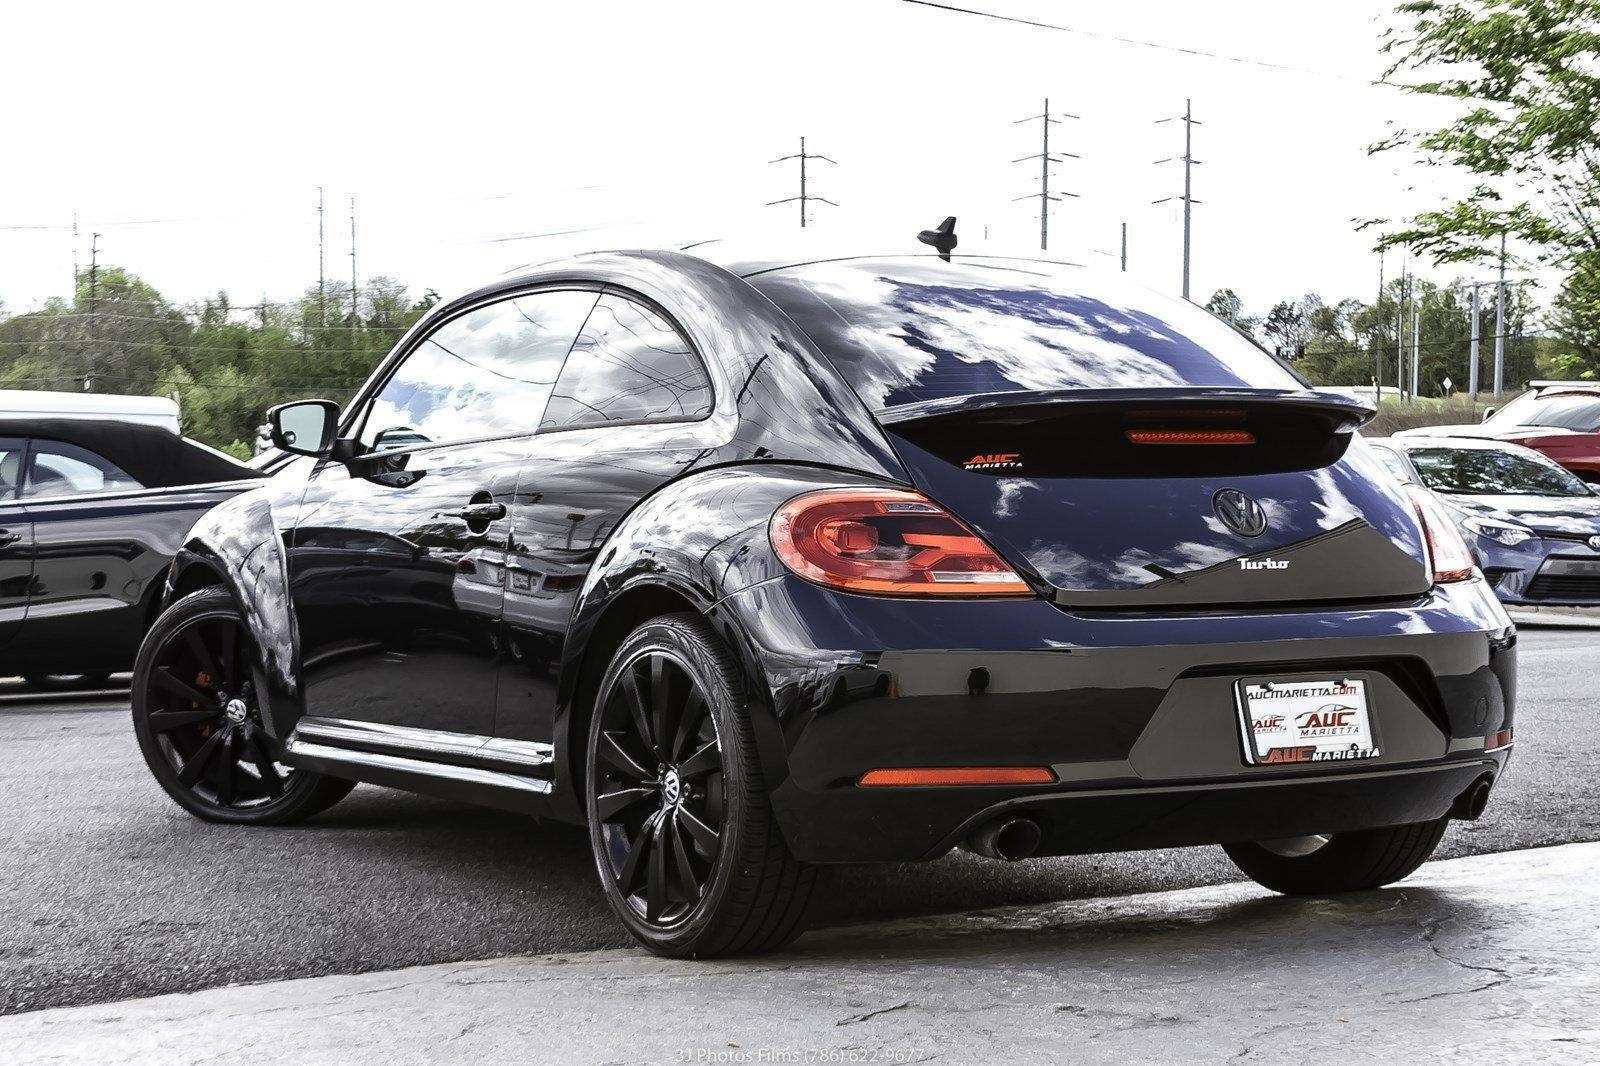 85 Gallery of Volkswagen New Beetle 2020 Prices by Volkswagen New Beetle 2020